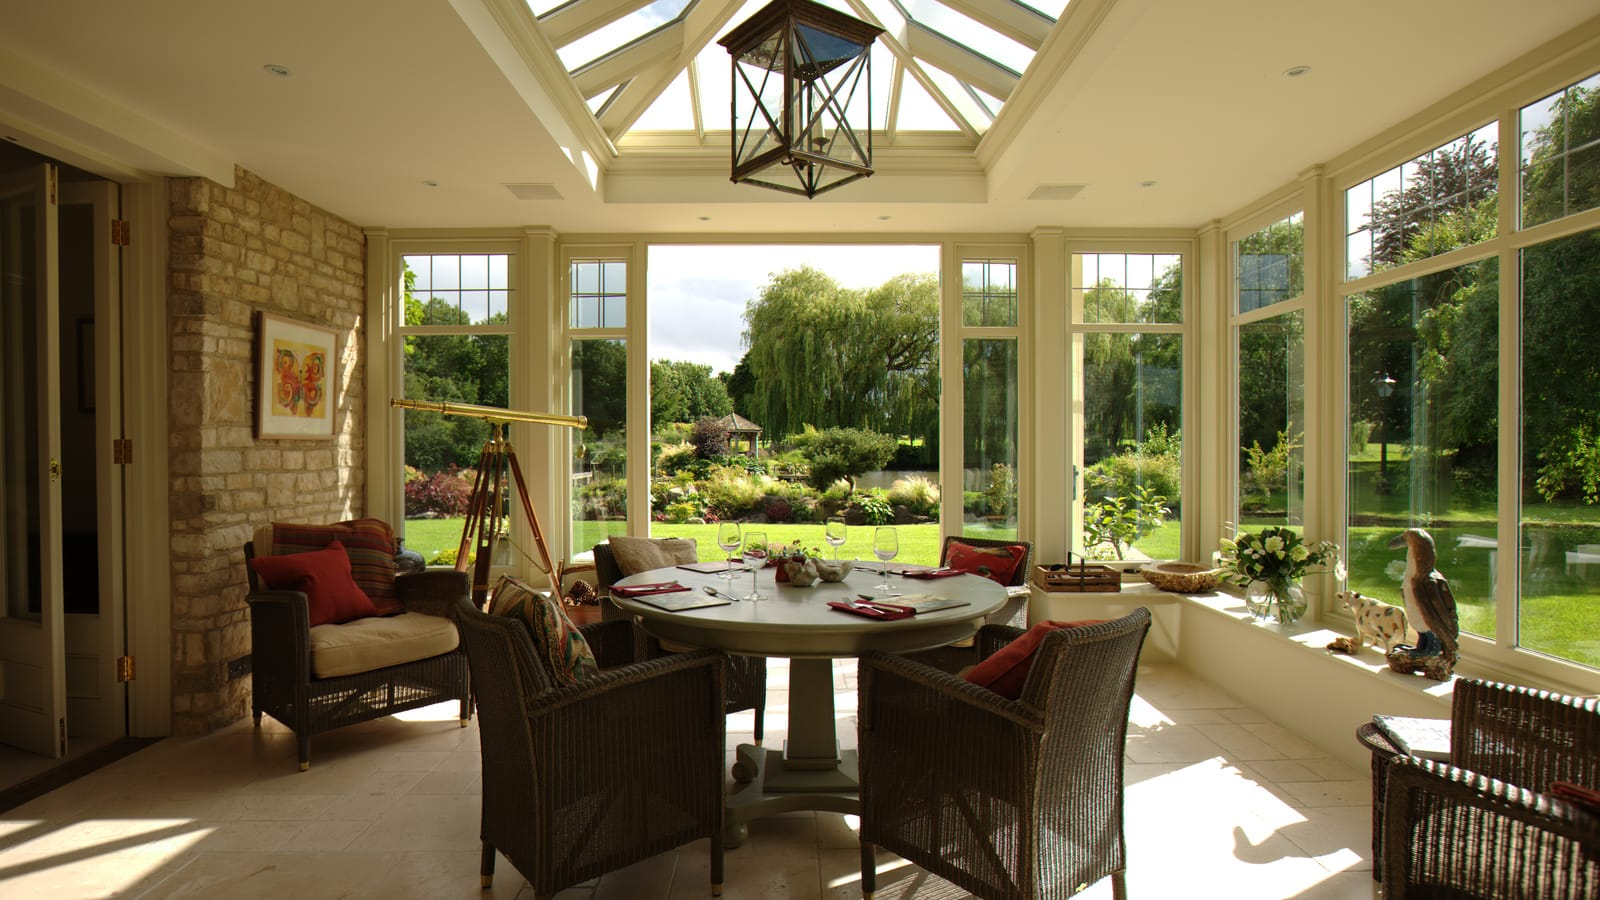 Orangery with landscape garden views